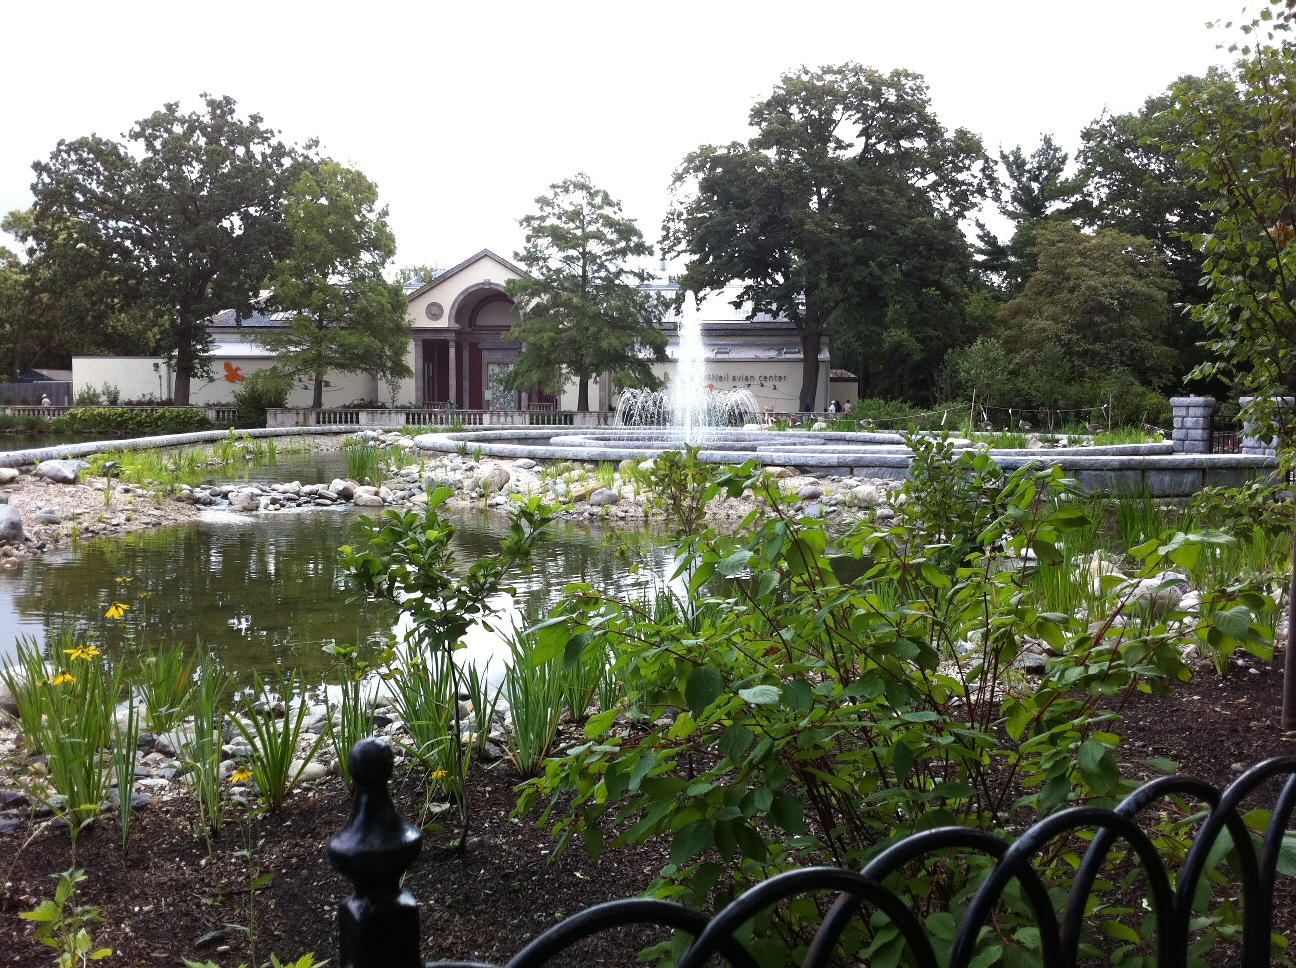 4-completed project showing wetland features, ponds, retaining walls, fountain and McNeil Avian Center -PS&S.jpg